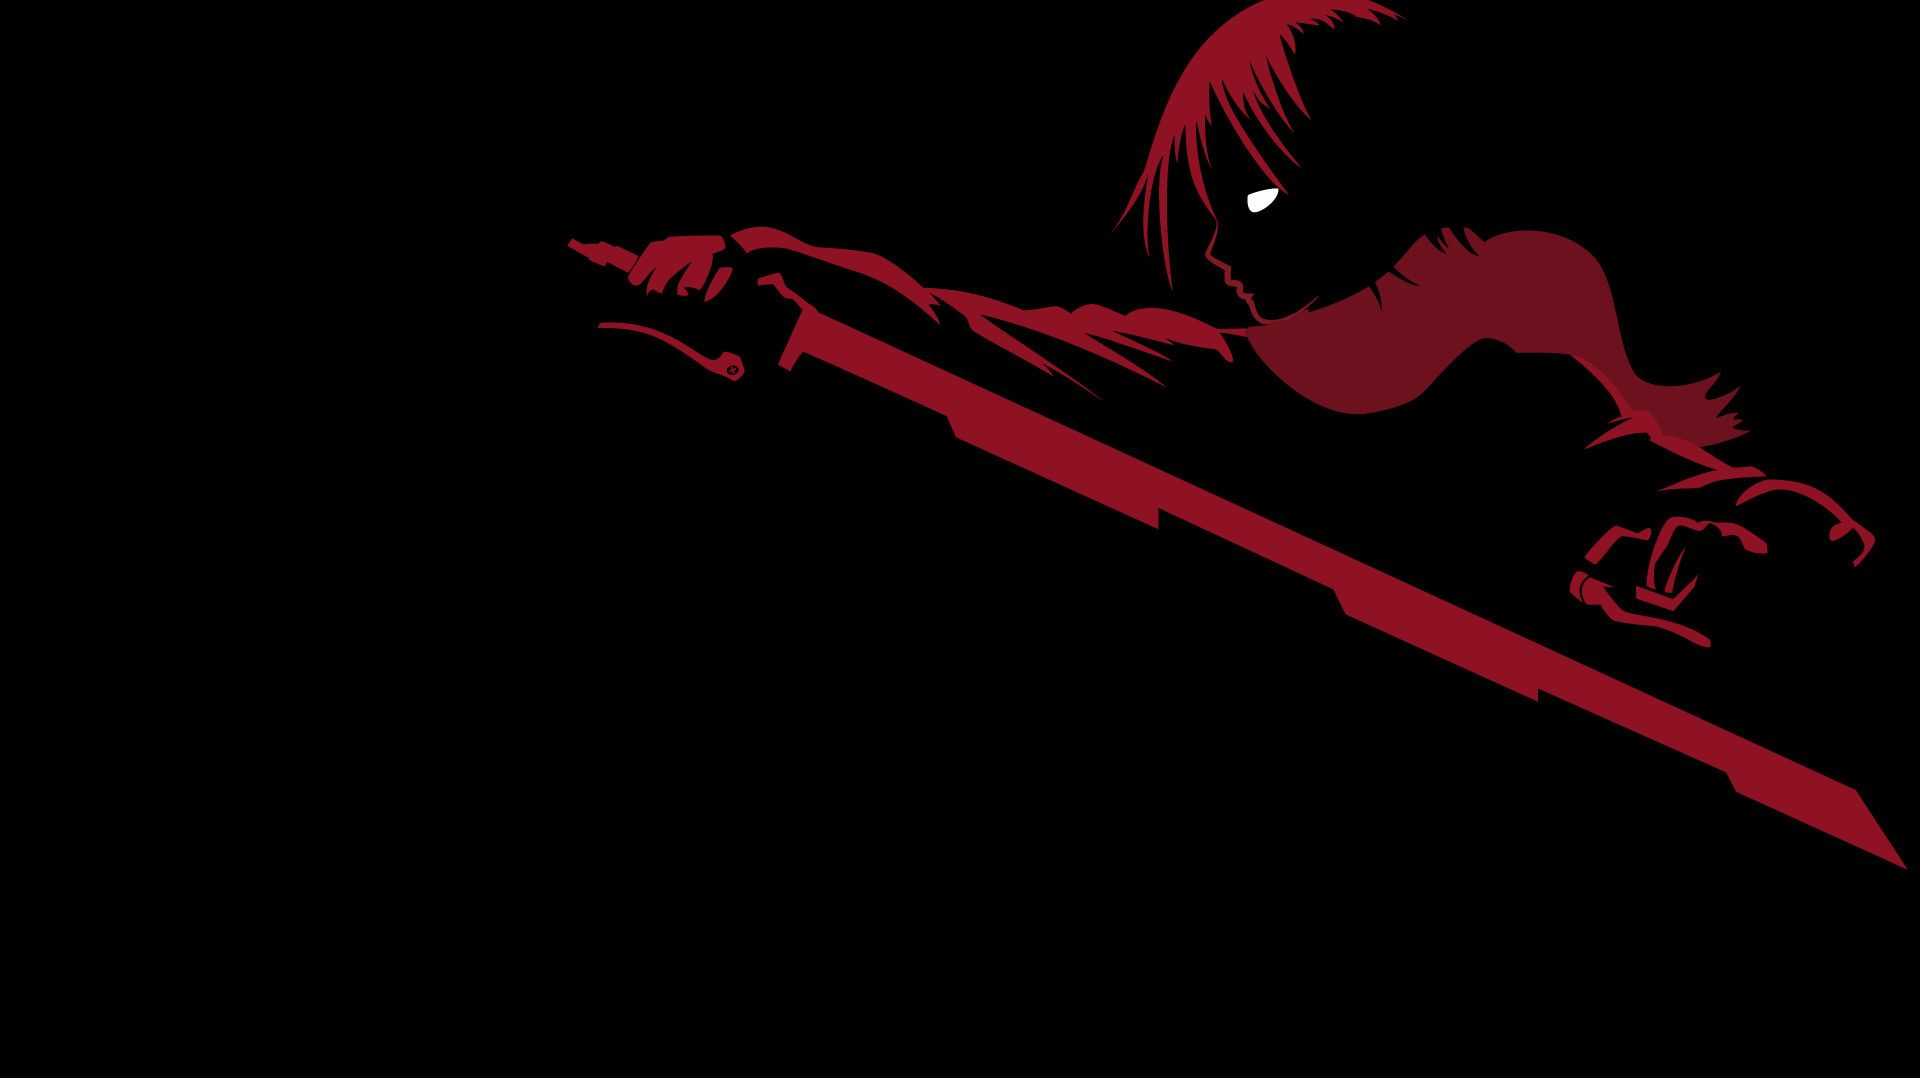 Red Anime Wallpapers Top Free Red Anime Backgrounds Wallpaperaccess